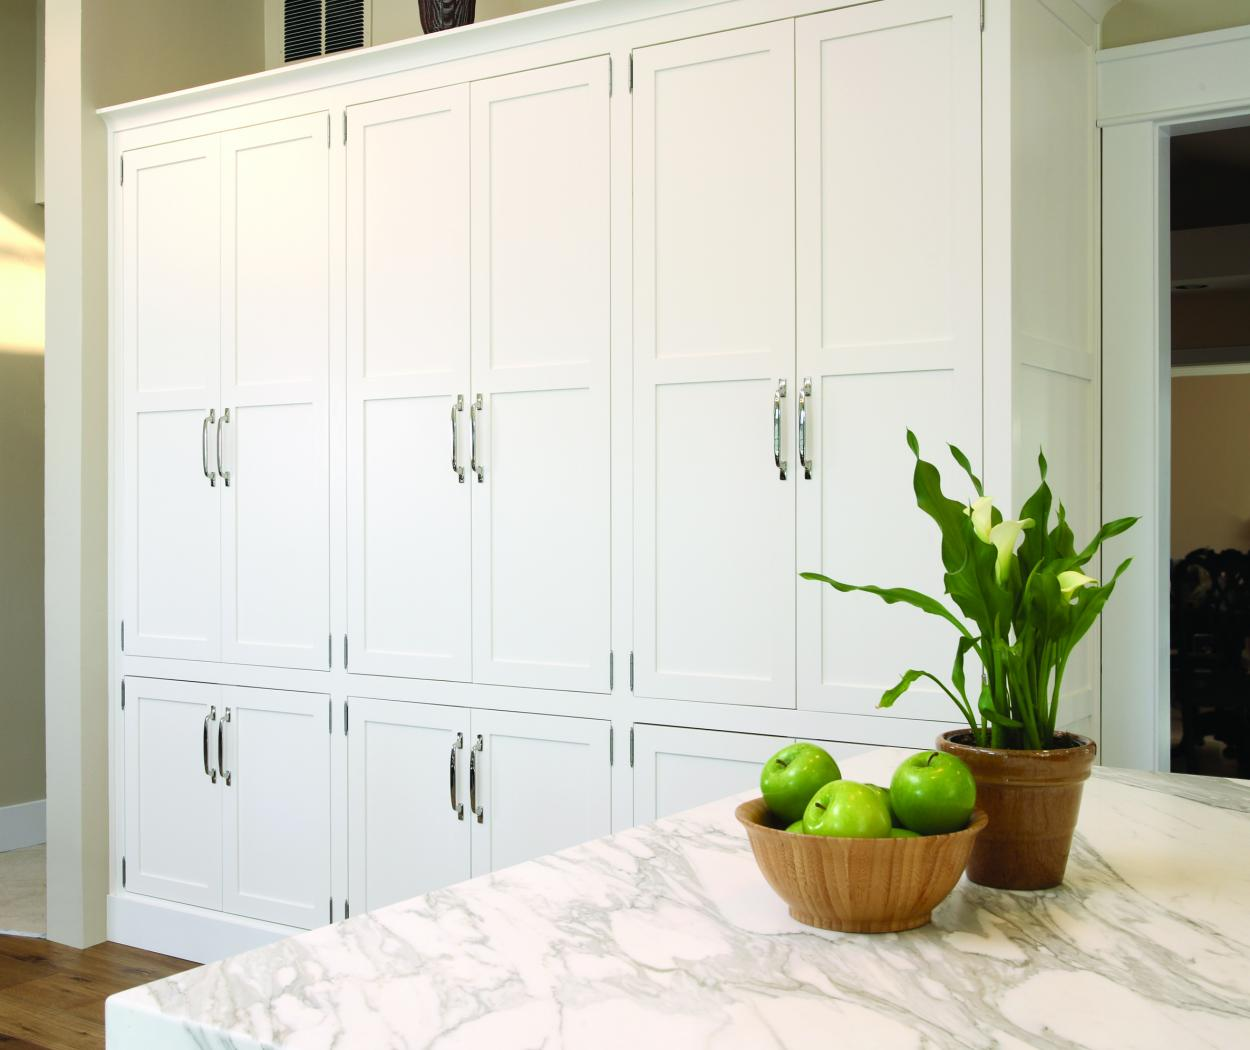 Beautiful White Transitional, Built-In Pantry with Chrome Hardware Pulls